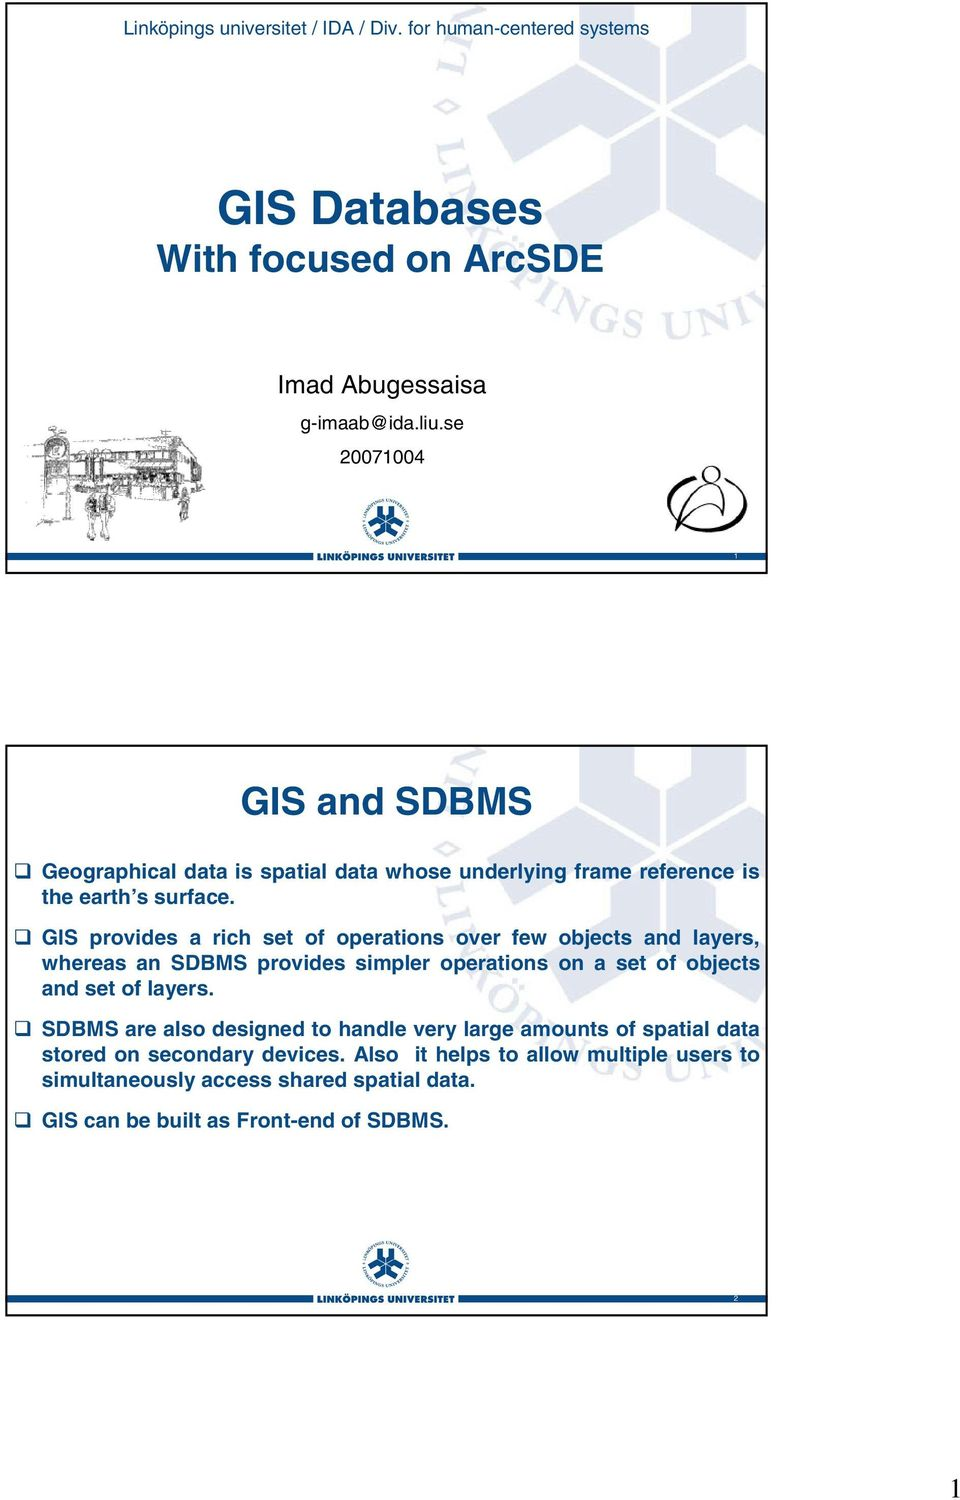 GIS provides a rich set of operations over few objects and layers, whereas an SDBMS provides simpler operations on a set of objects and set of layers.